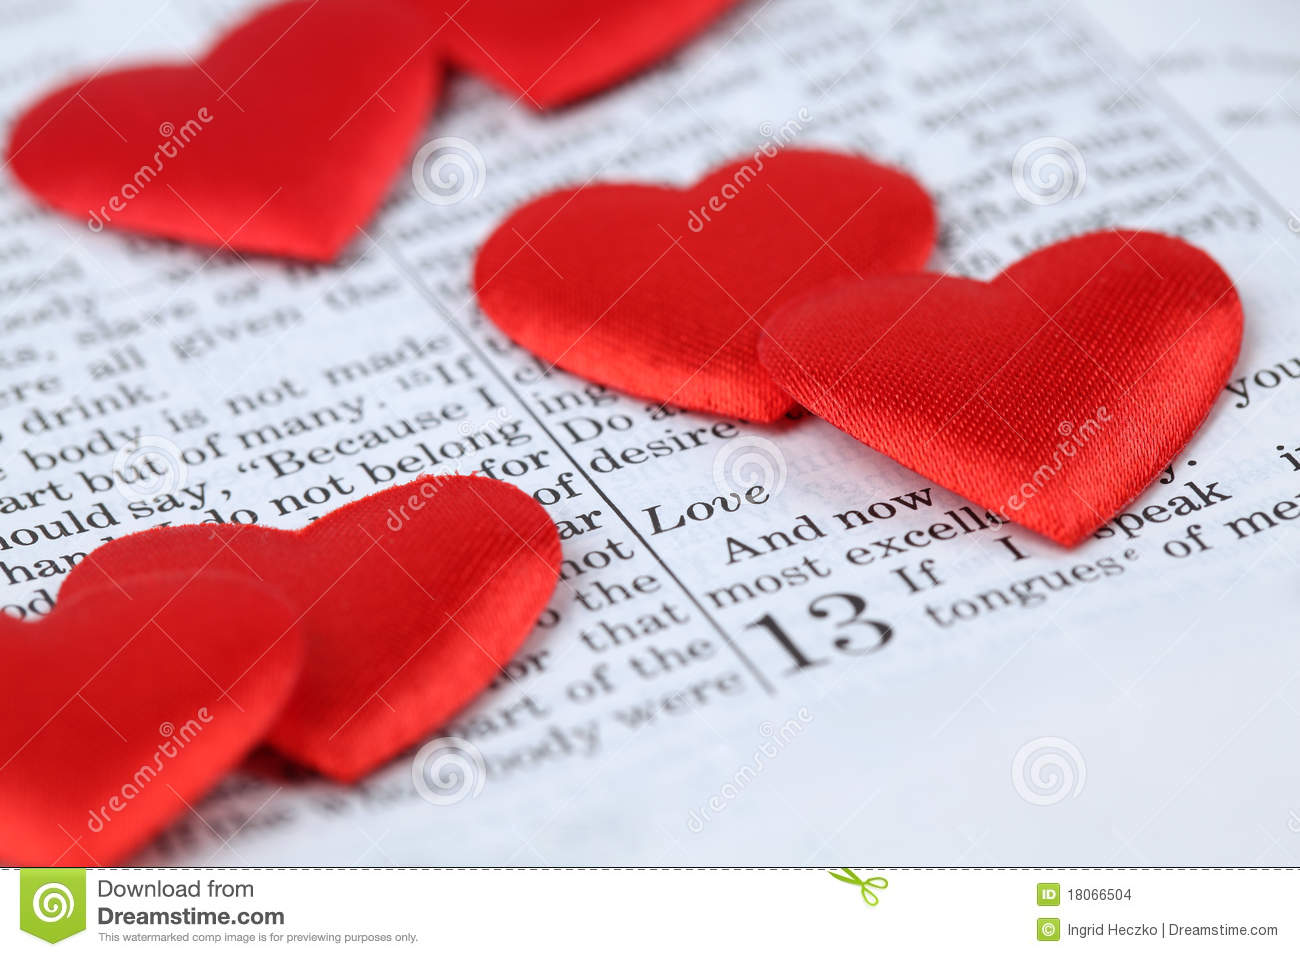 Bible open to 1st corinthians 13 a passage about love and little